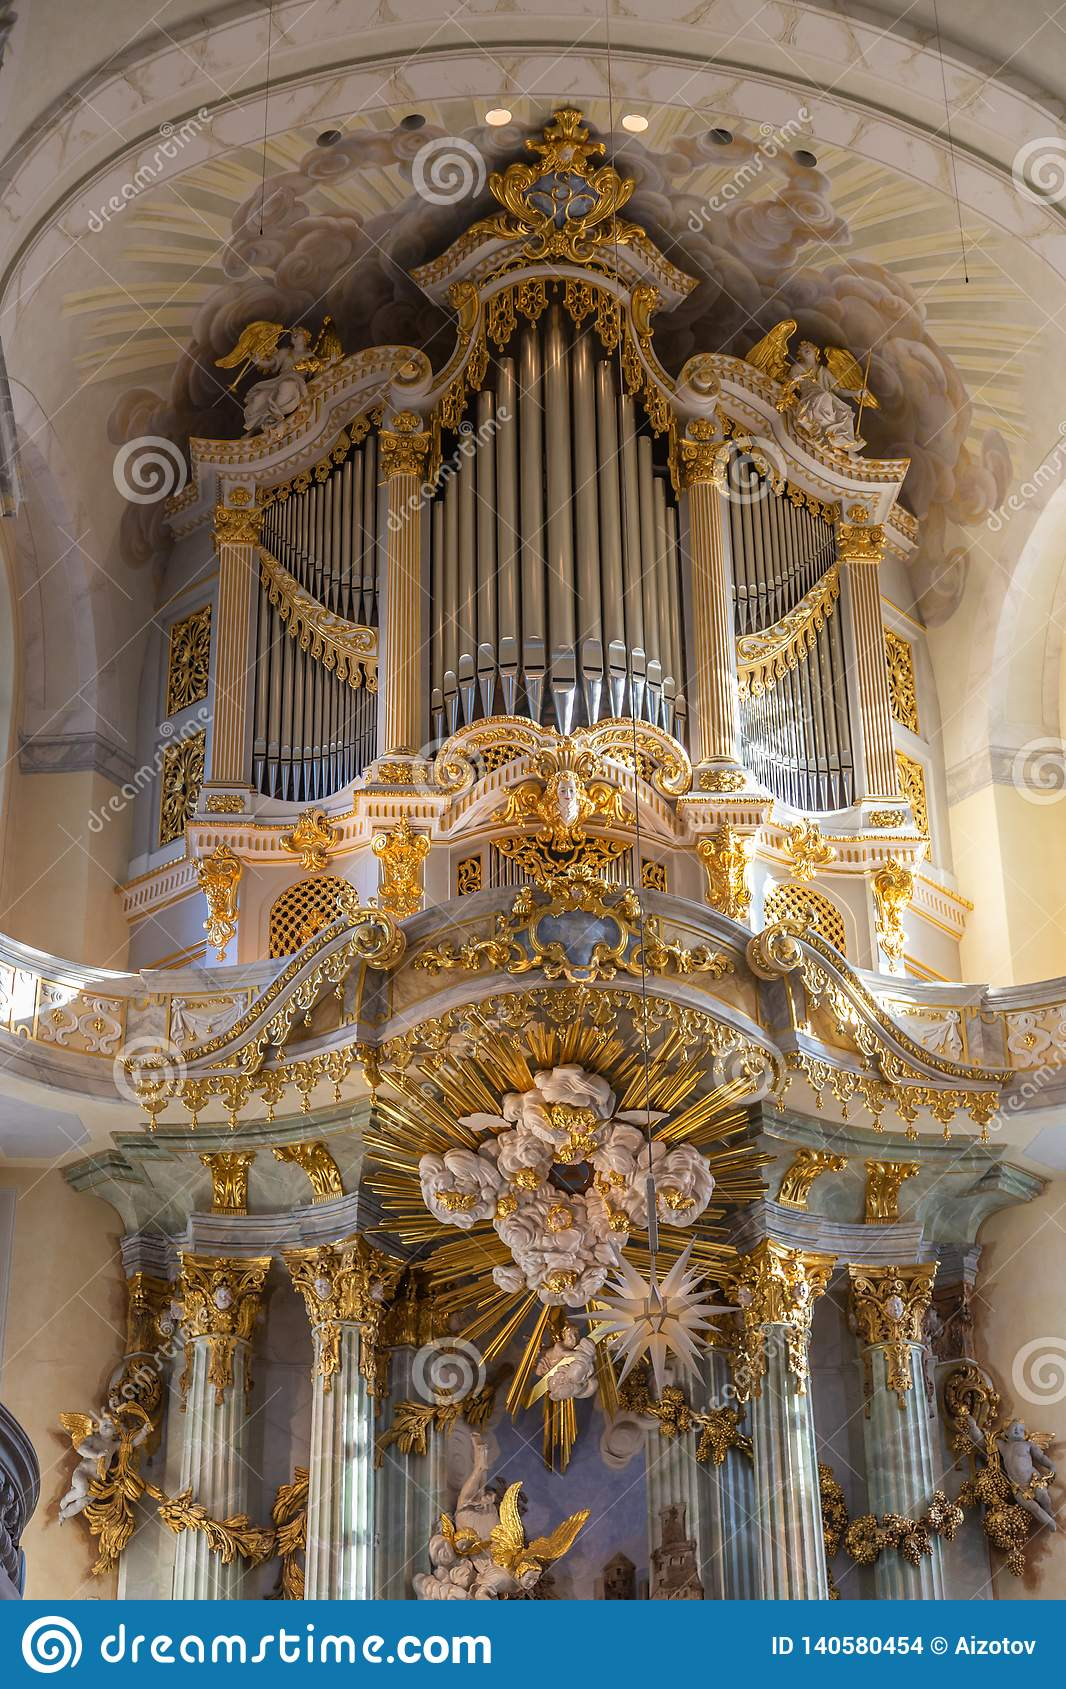 Beautiful carved gilded organ in the Frauenkirche church in Dresden, Germany